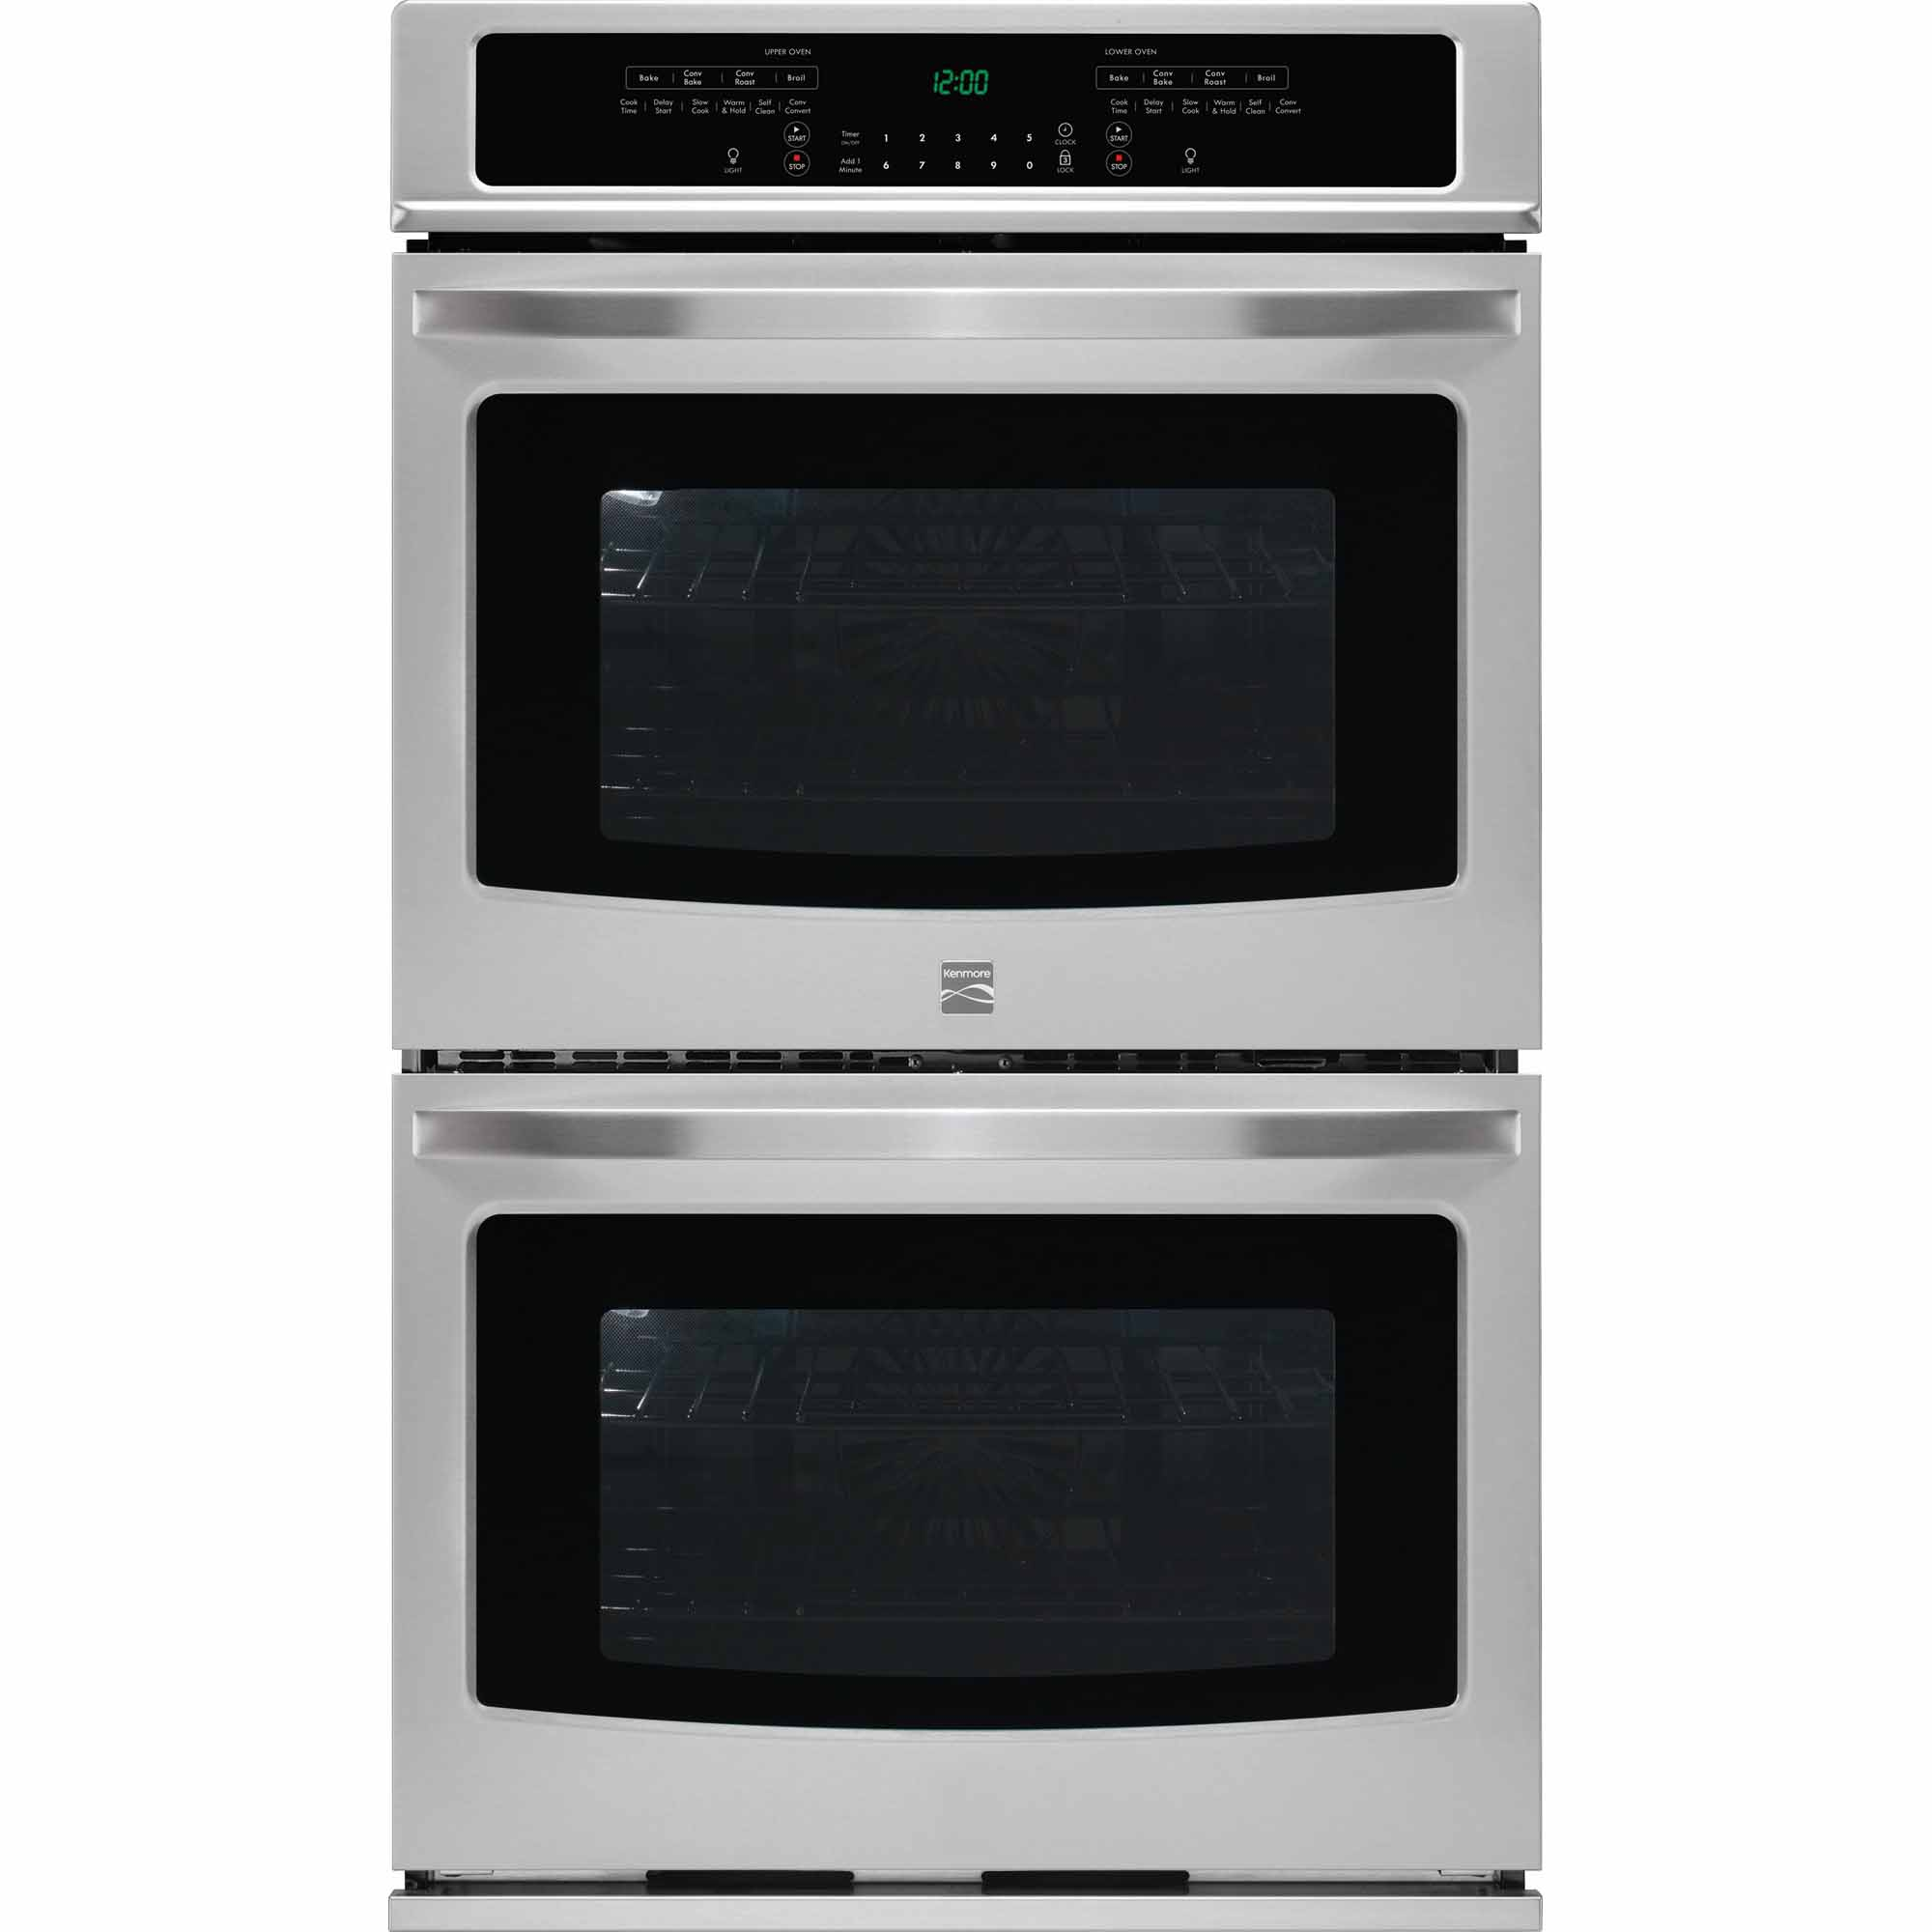 Kenmore 49523 27 Self-Clean Double Electric Wall Oven w/Convection - Stainless Steel